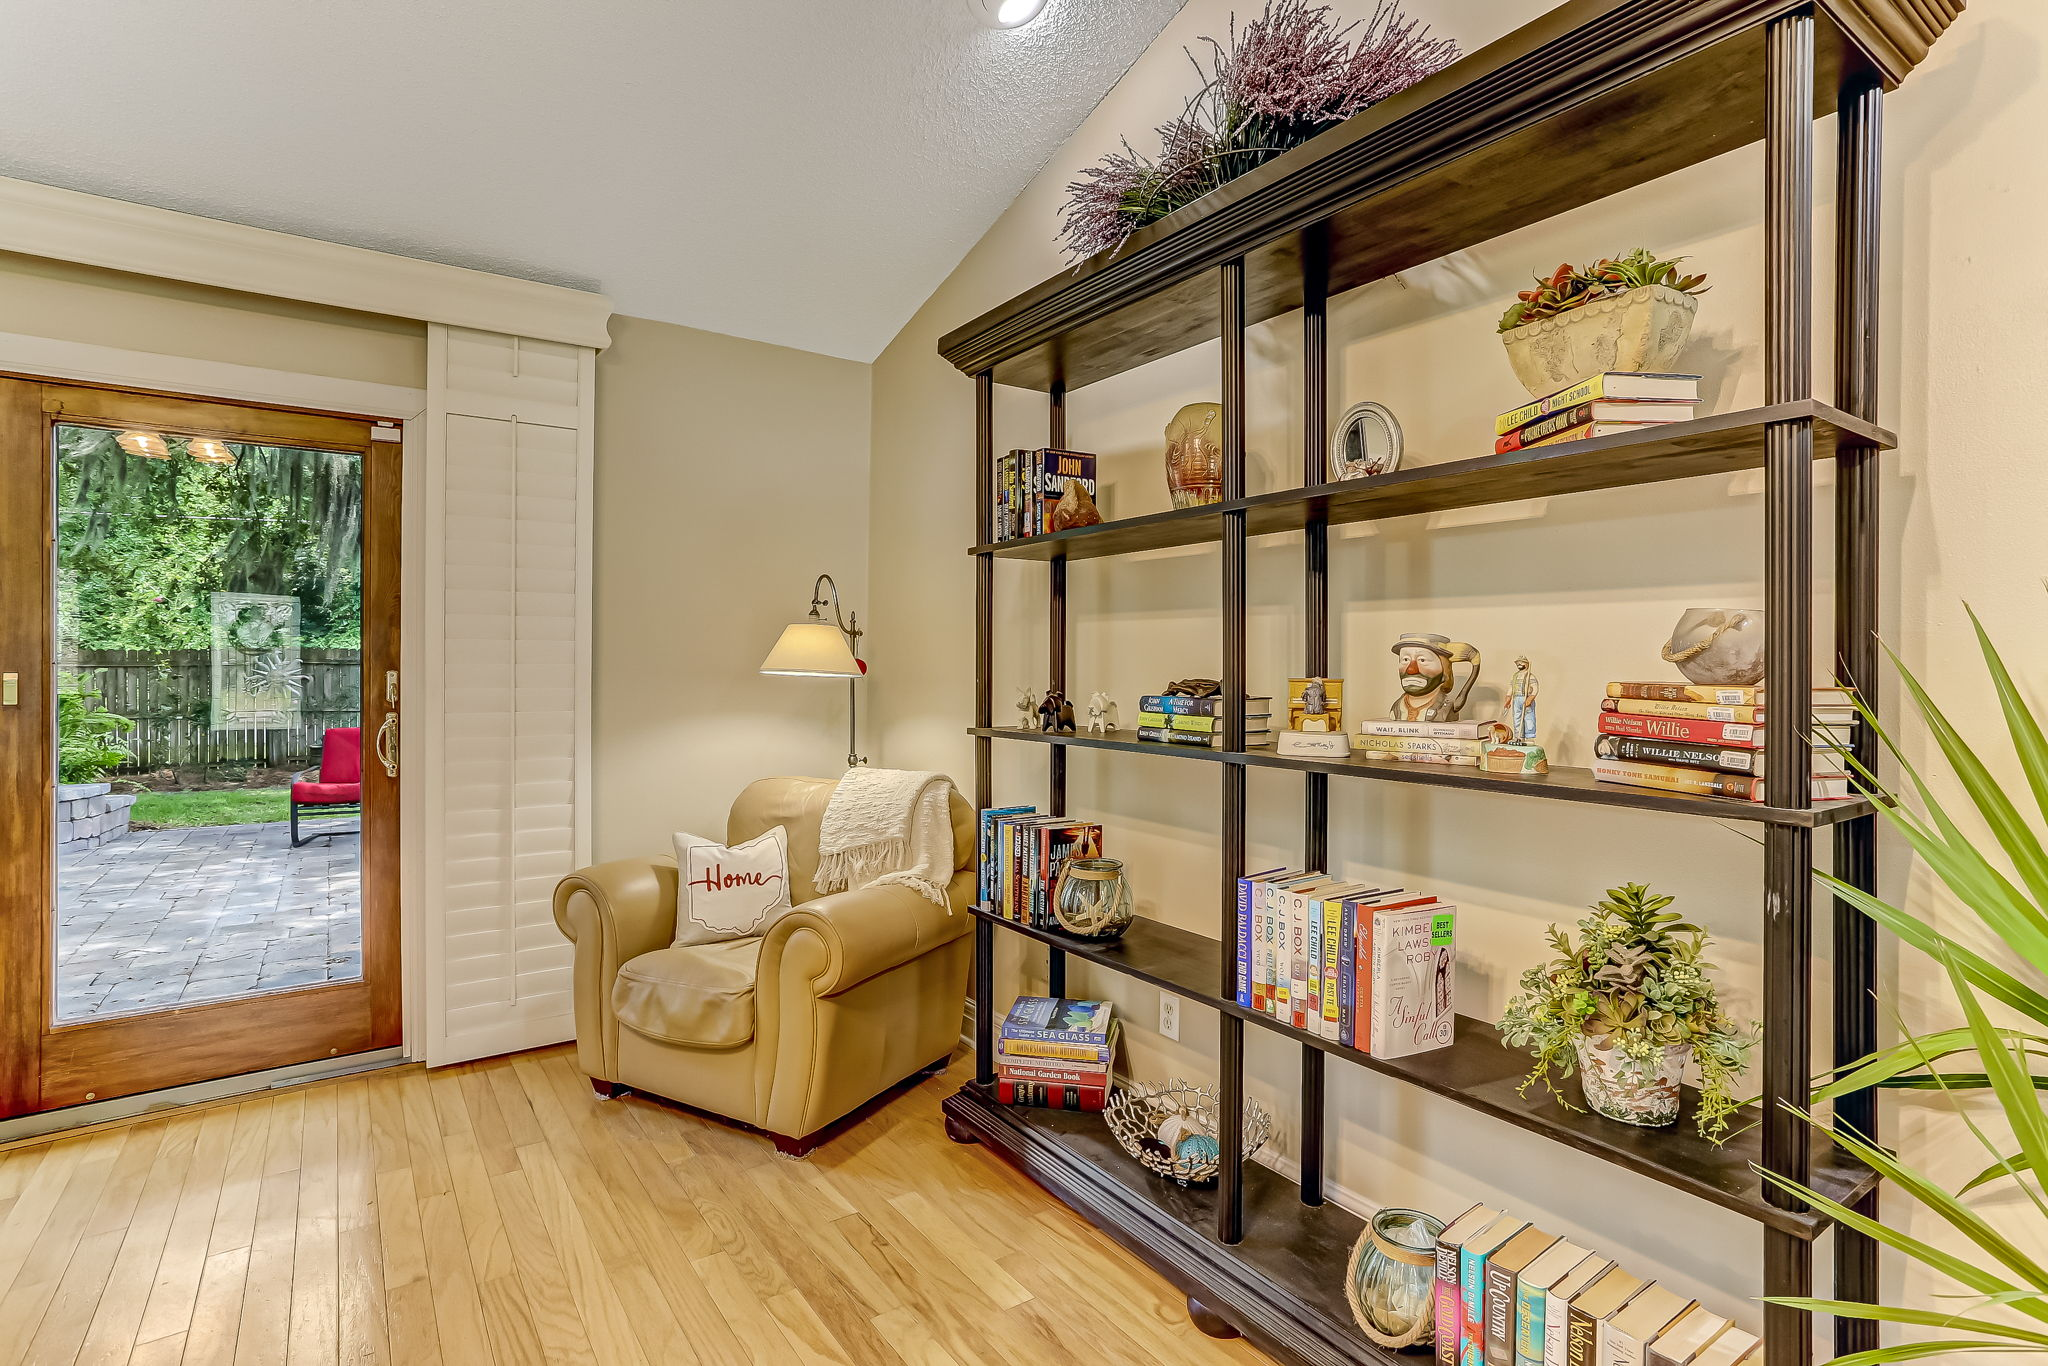 Ample space for multiple seating vignettes